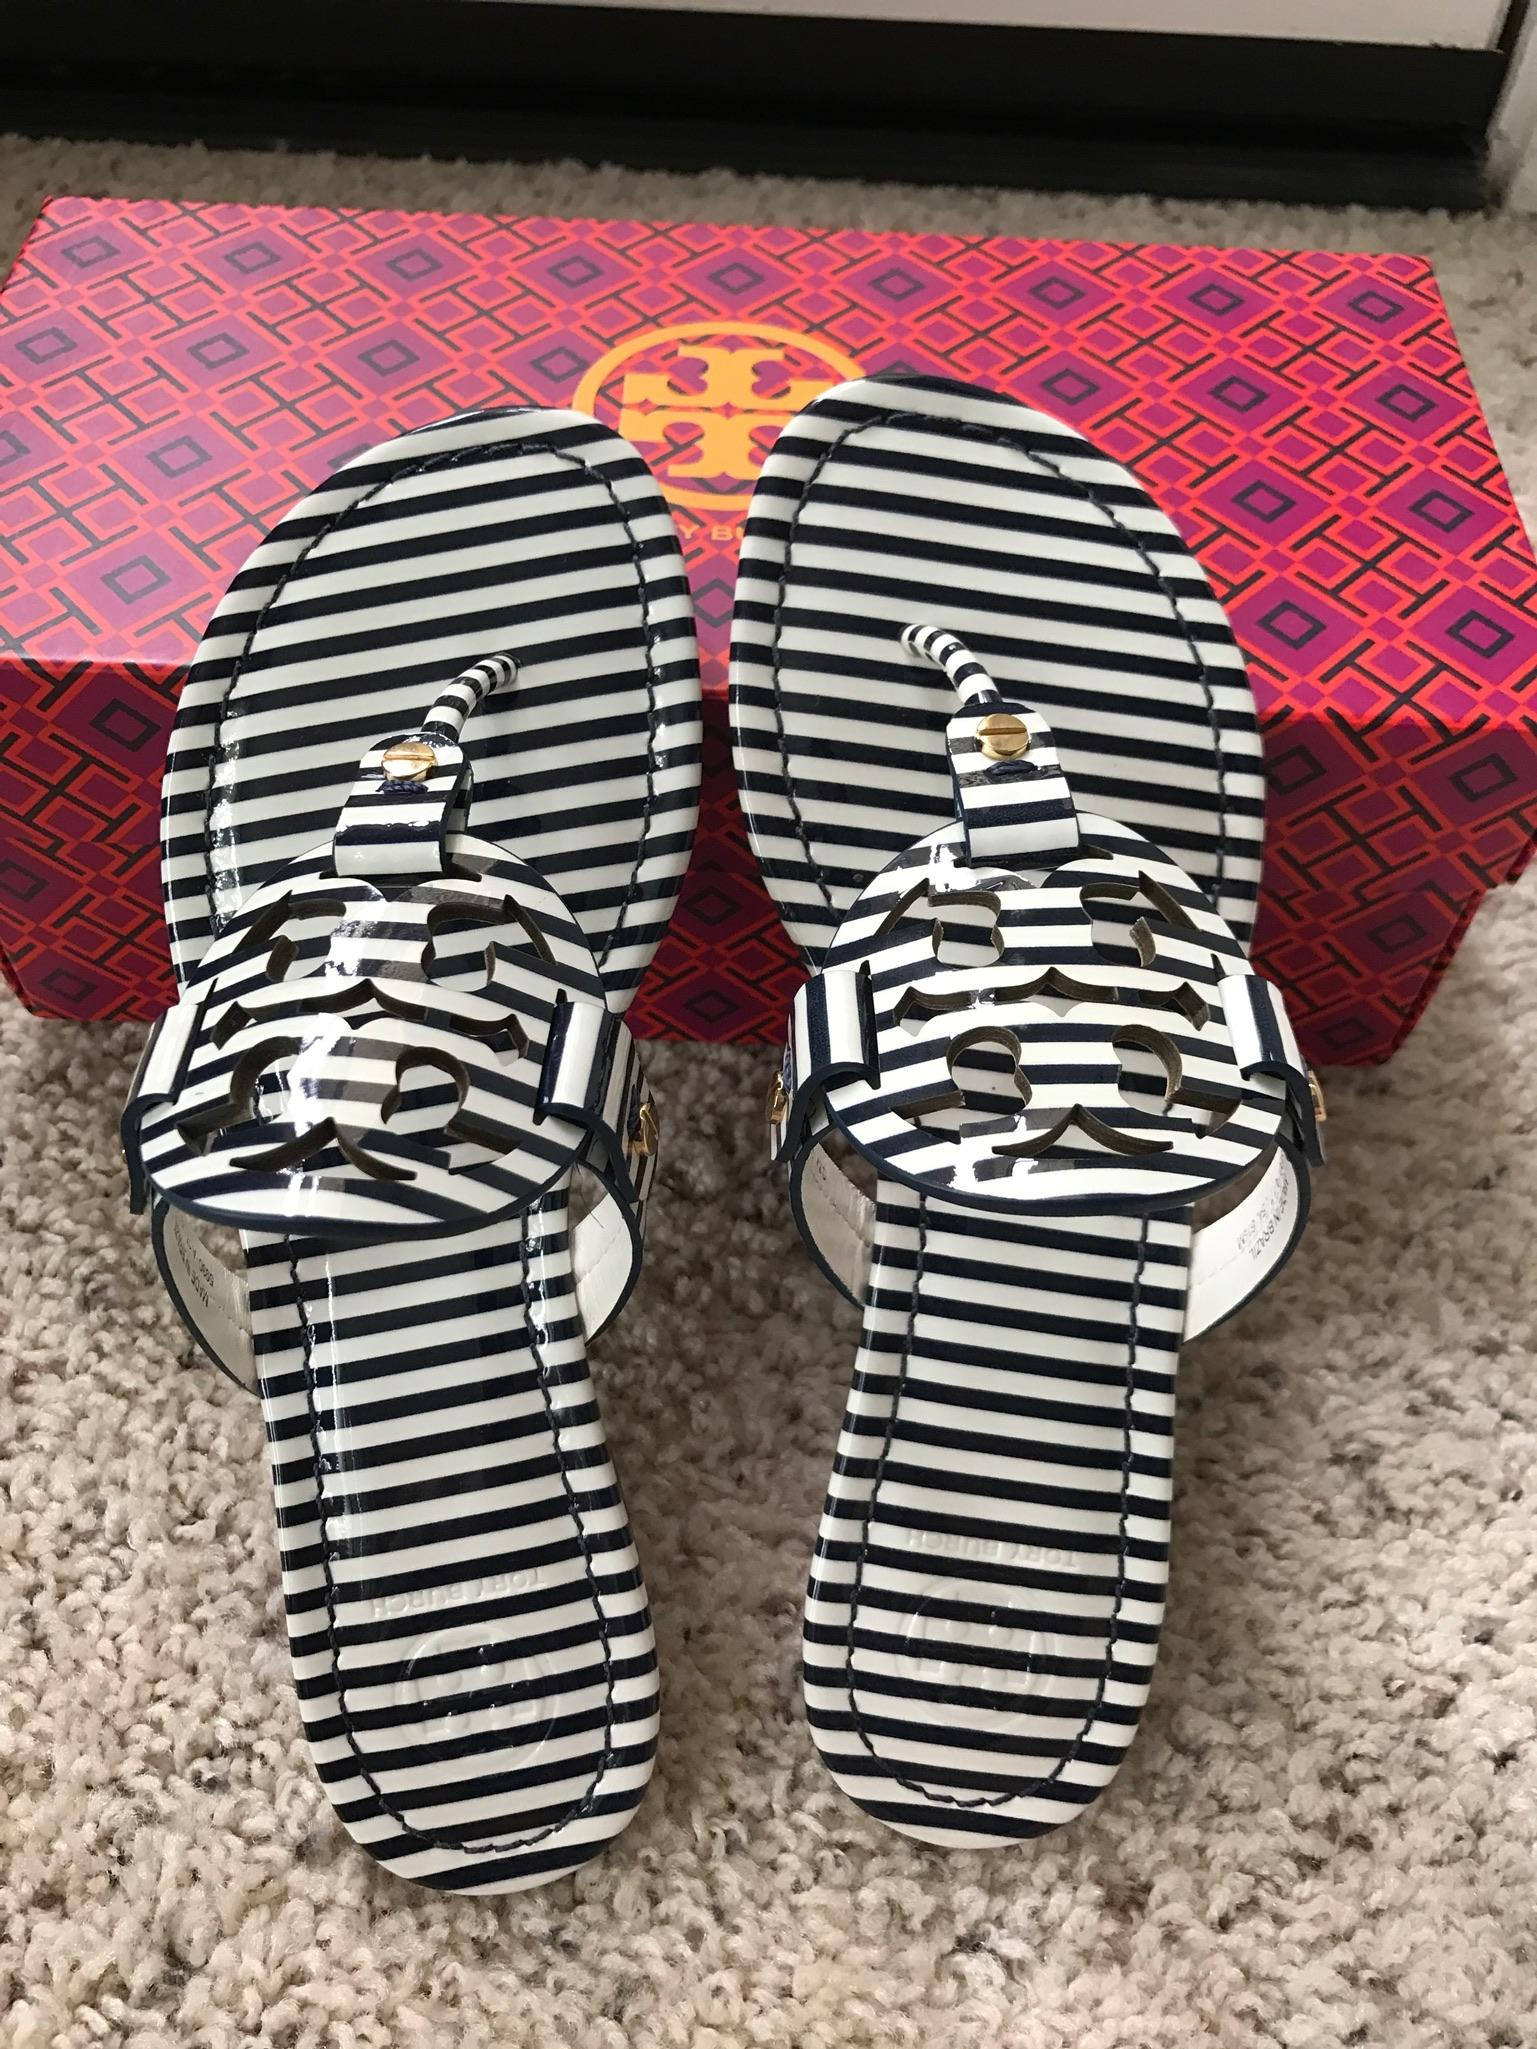 3b8b12775f51 ... Tory Burch Multicolor 10m Miller Striped Striped Striped Printed Patent  Leather Sandals Size US 10 Regular ...